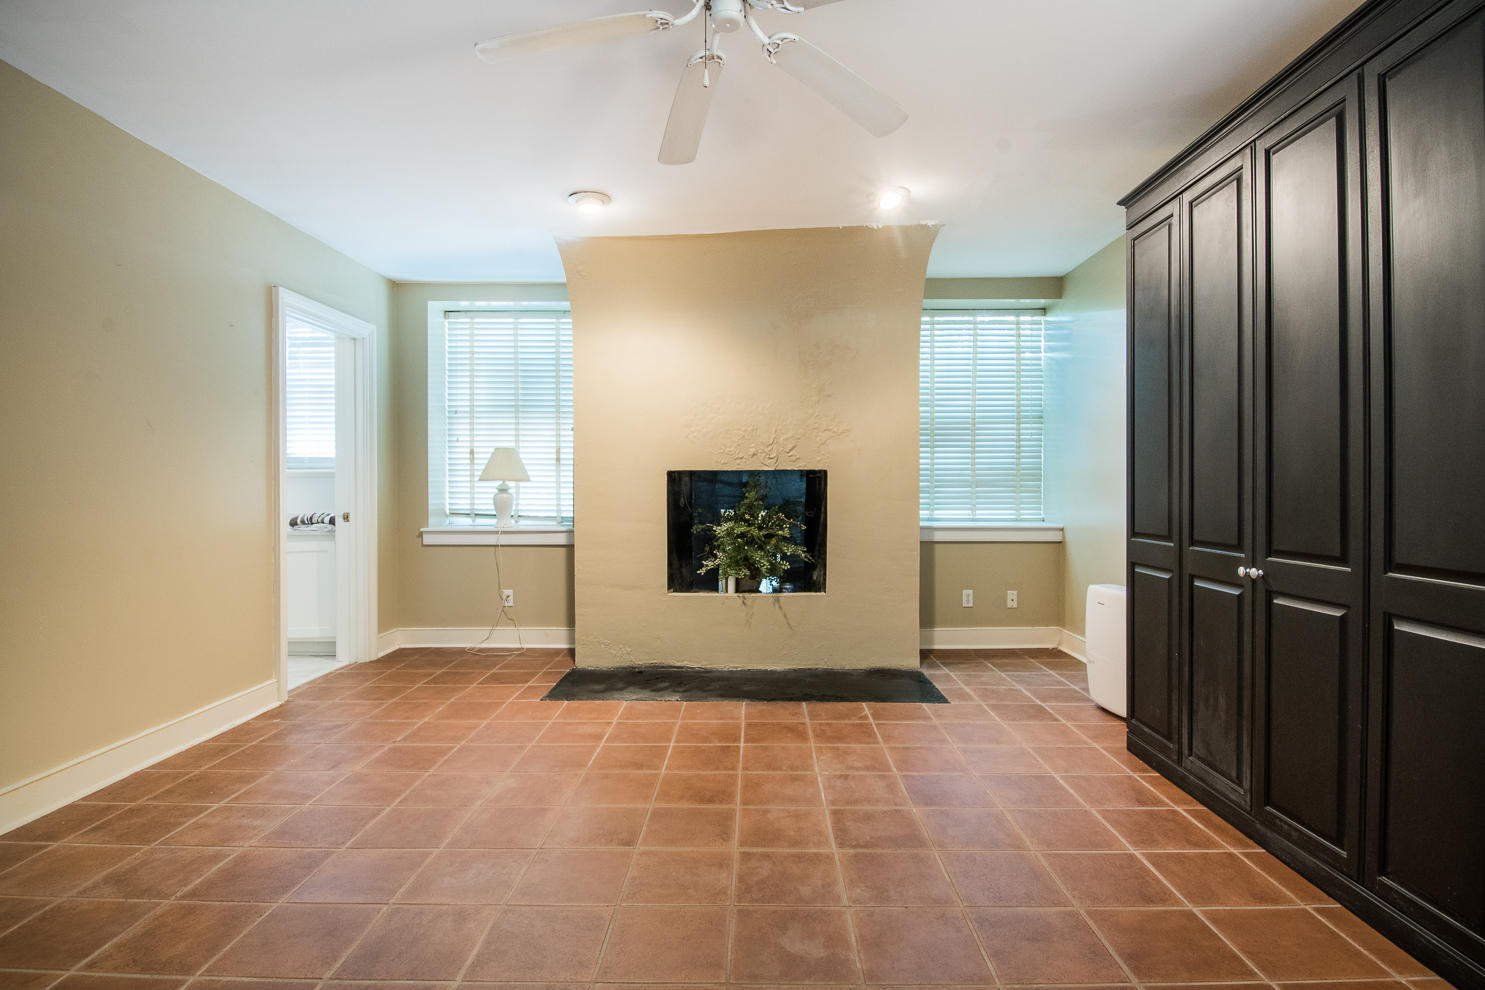 South of Broad Homes For Sale - 1 Prices, Charleston, SC - 54